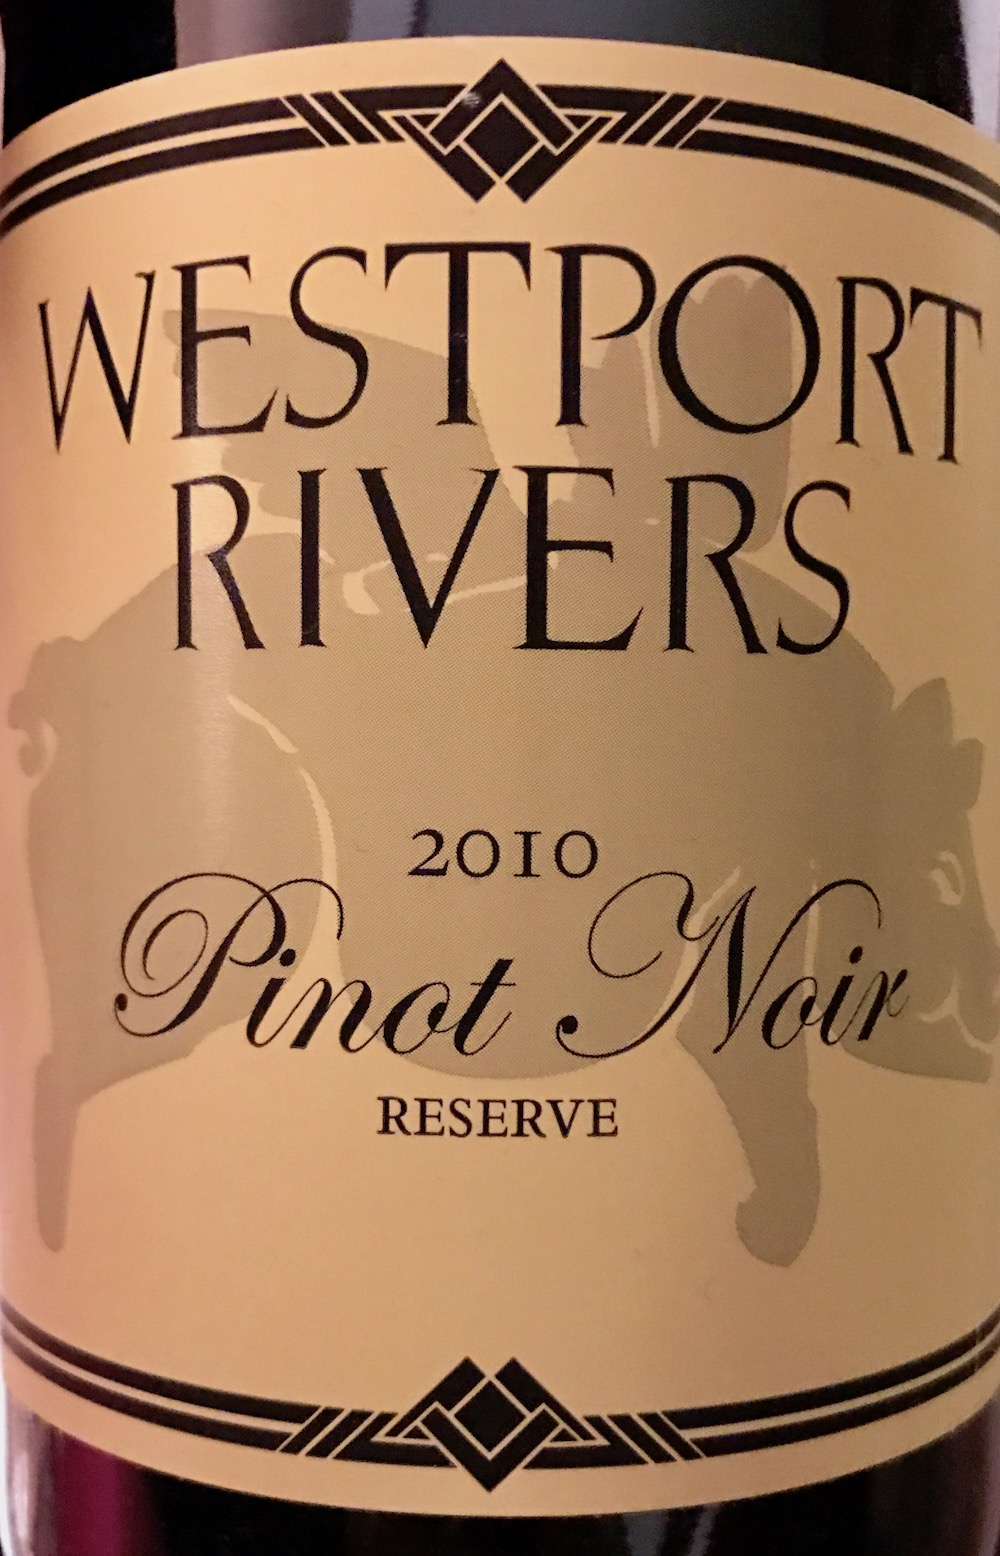 Westport Rivers Pinot Noir Reserve